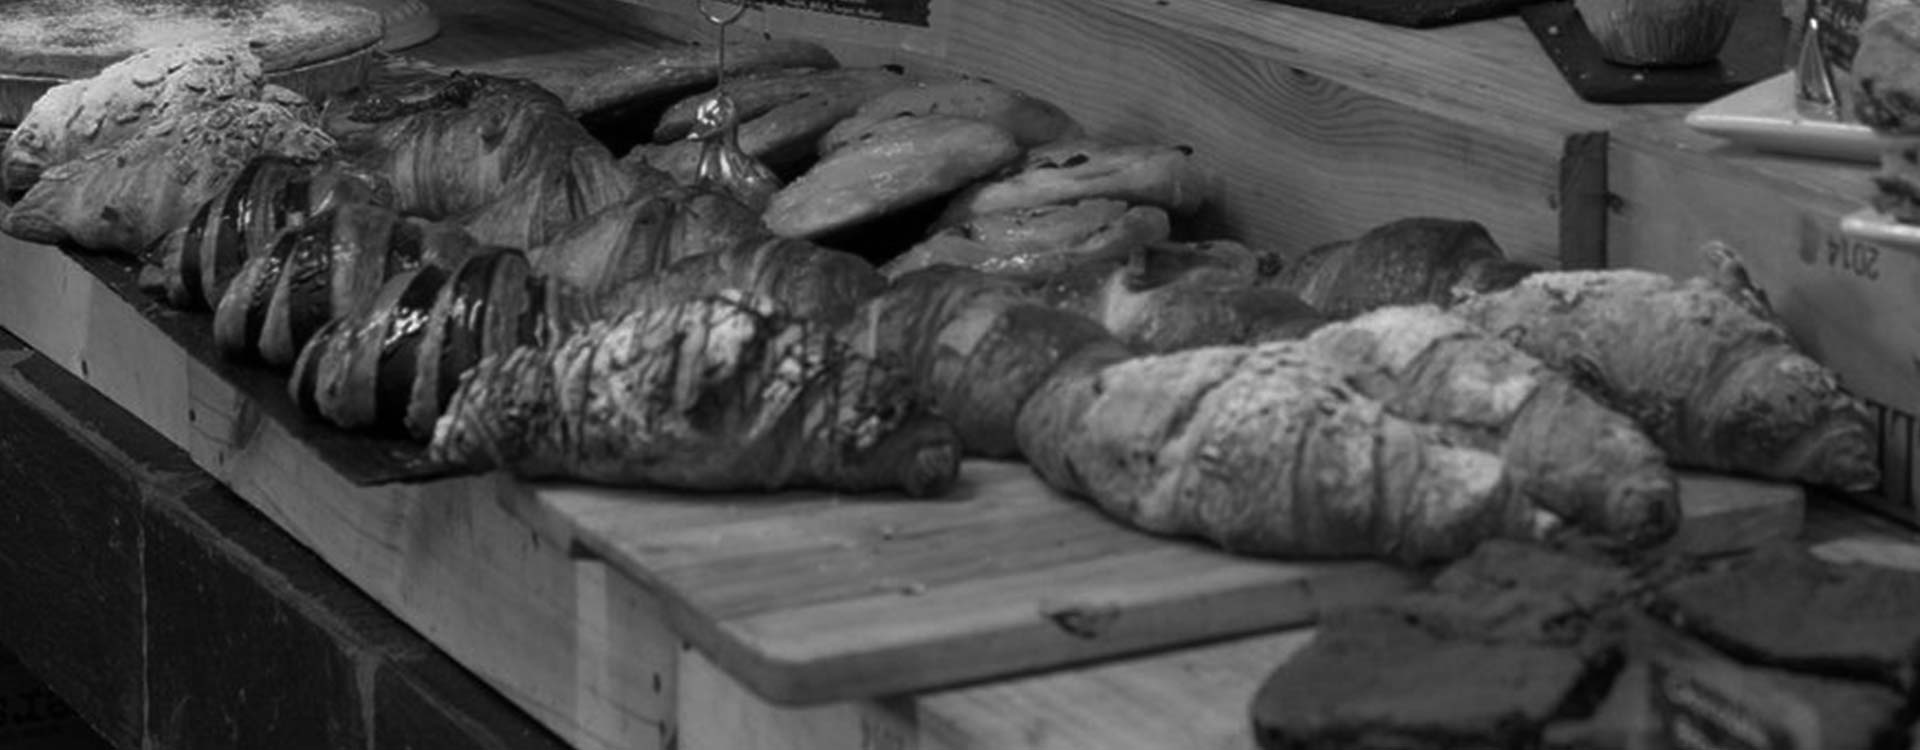 Croissants - Friendly Loaf Bakery, Bury St Edmunds